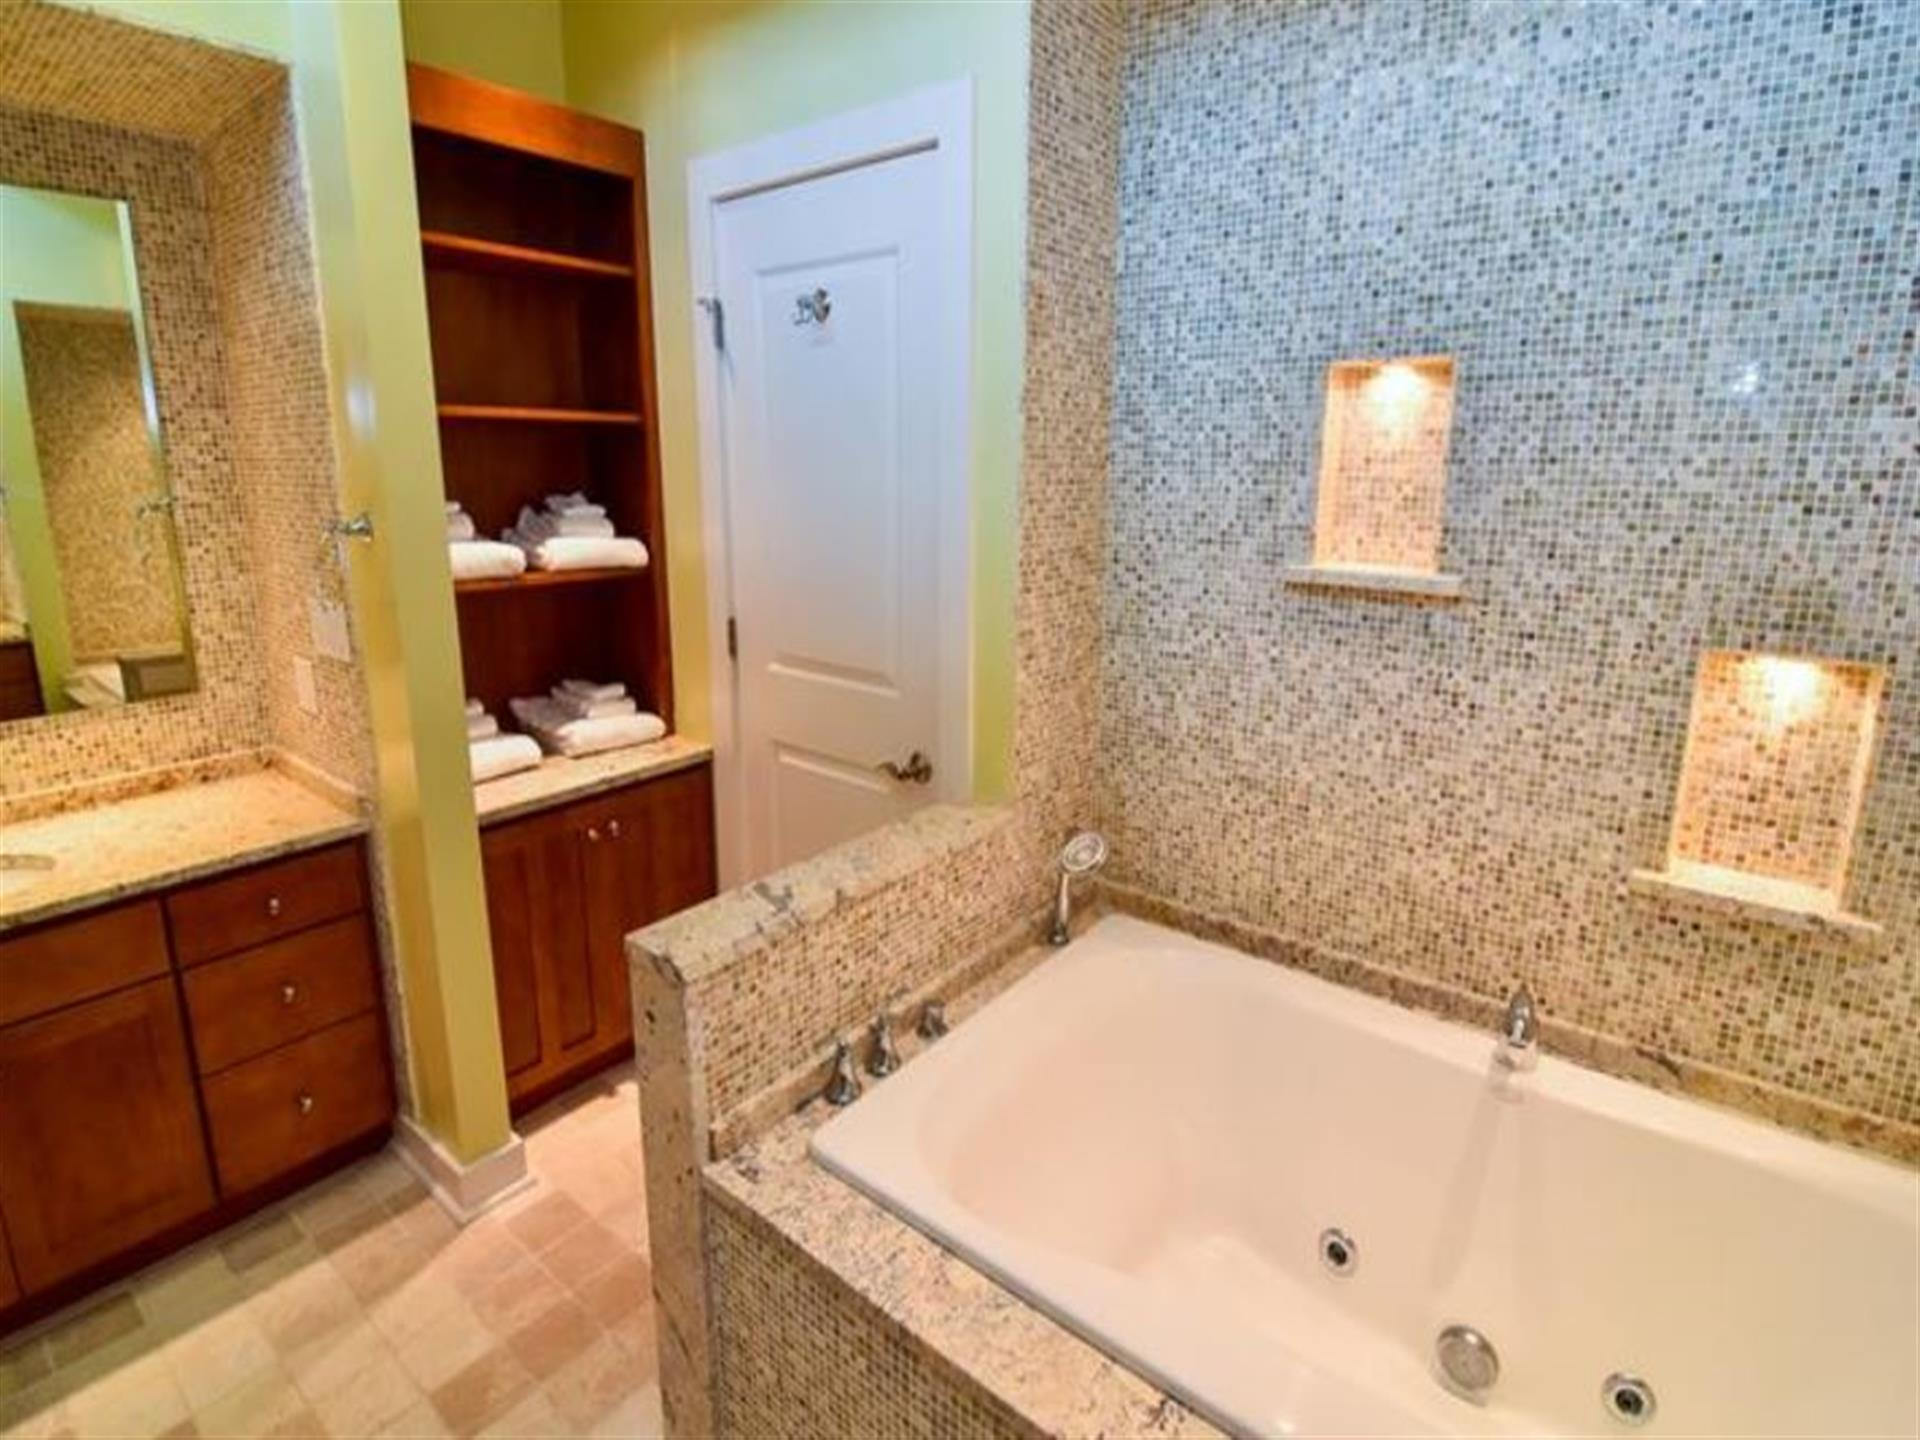 One bathrrom with speckled tiles as well as a tub